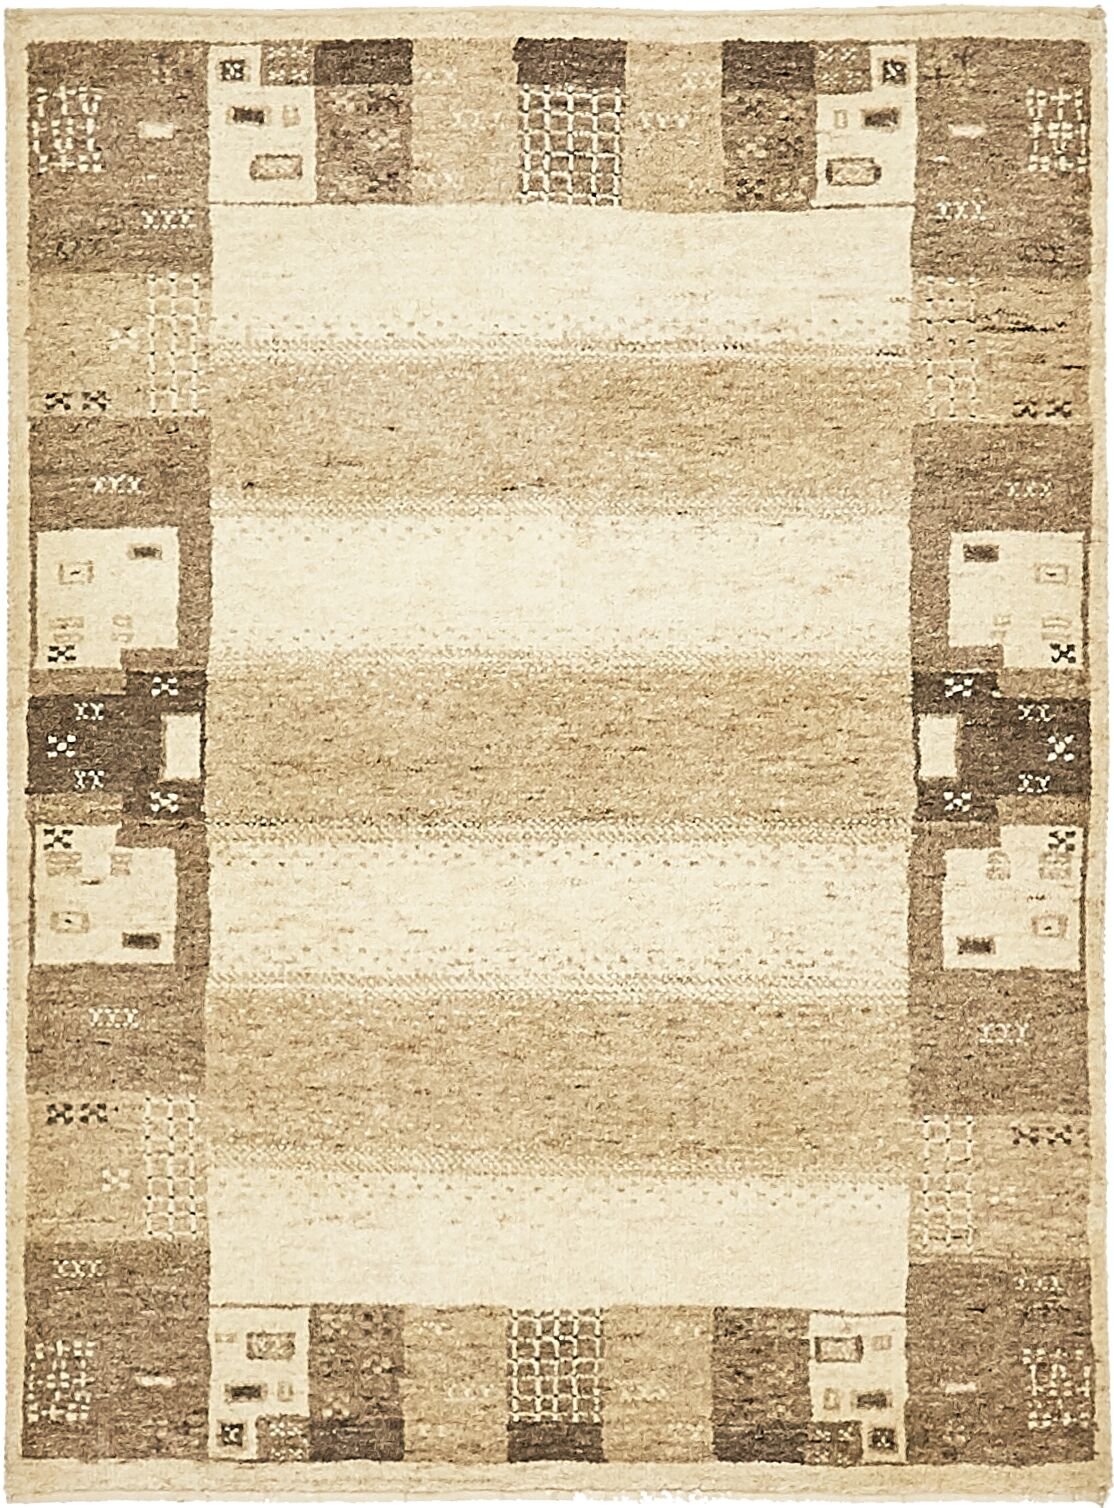 One-of-a-Kind Didcot Hand-Knotted 3' x 4' Wool Cream Area Rug